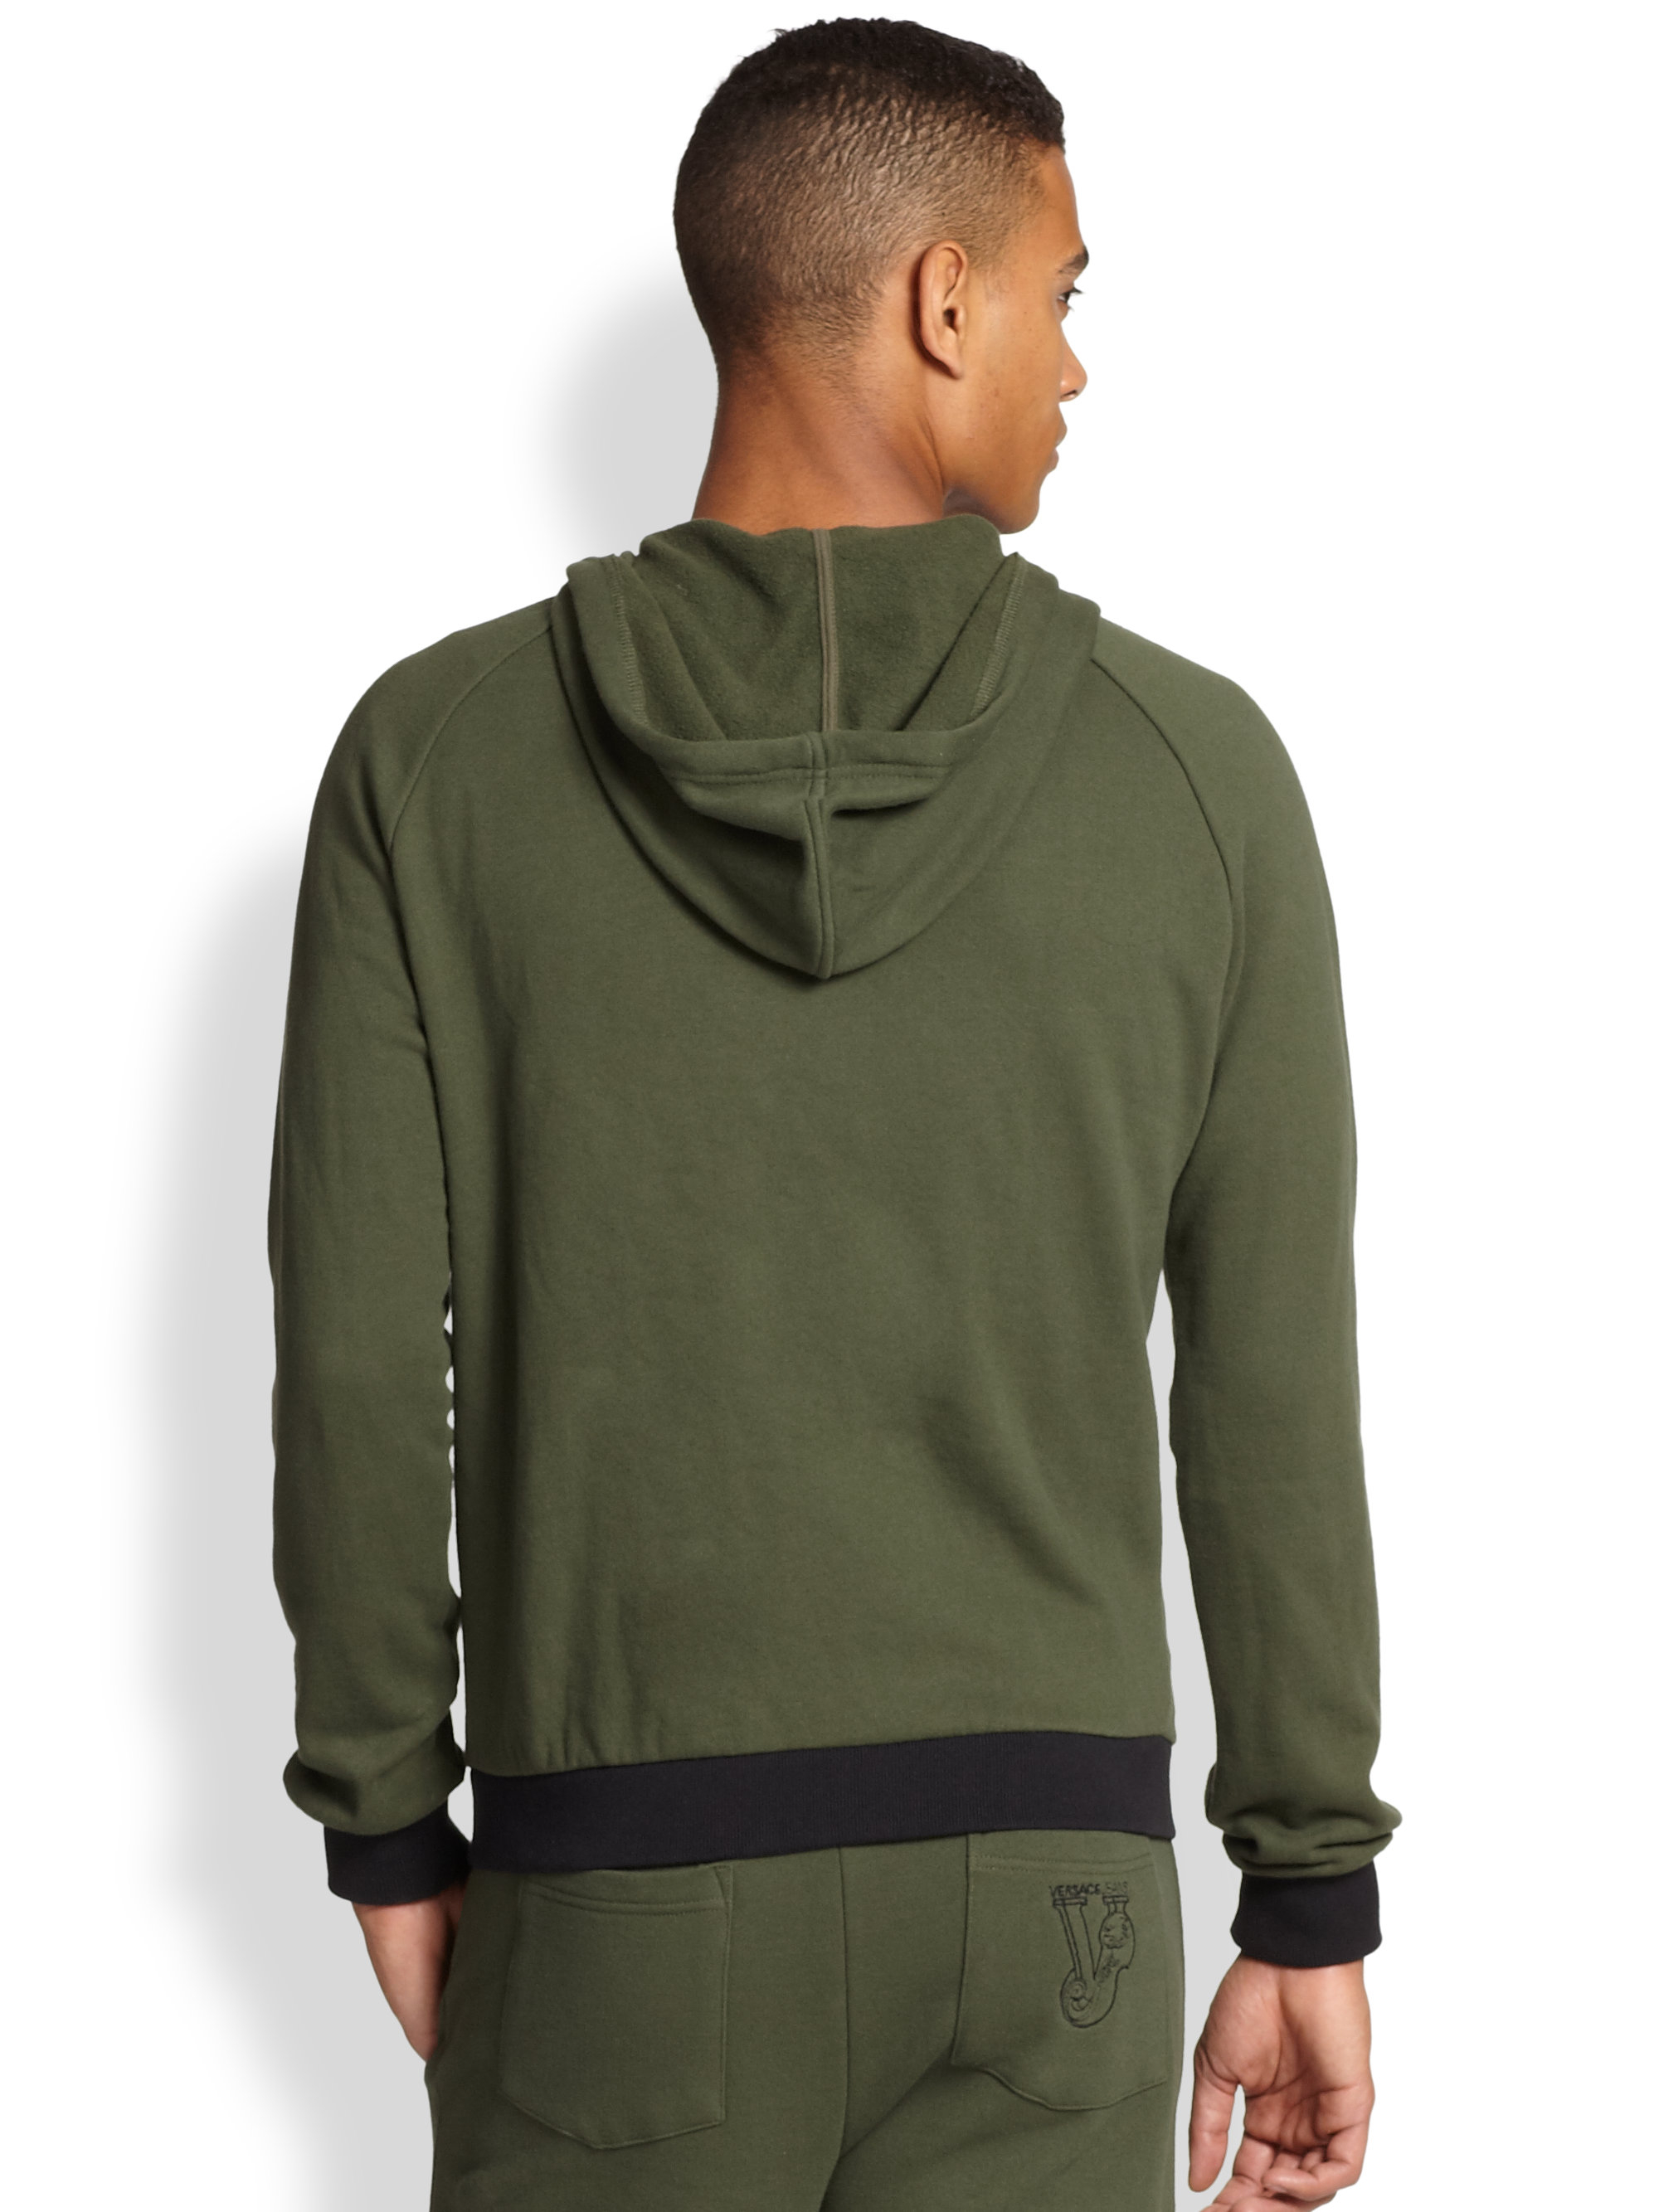 Olive Green Hoodie Mens | Fashion Ql